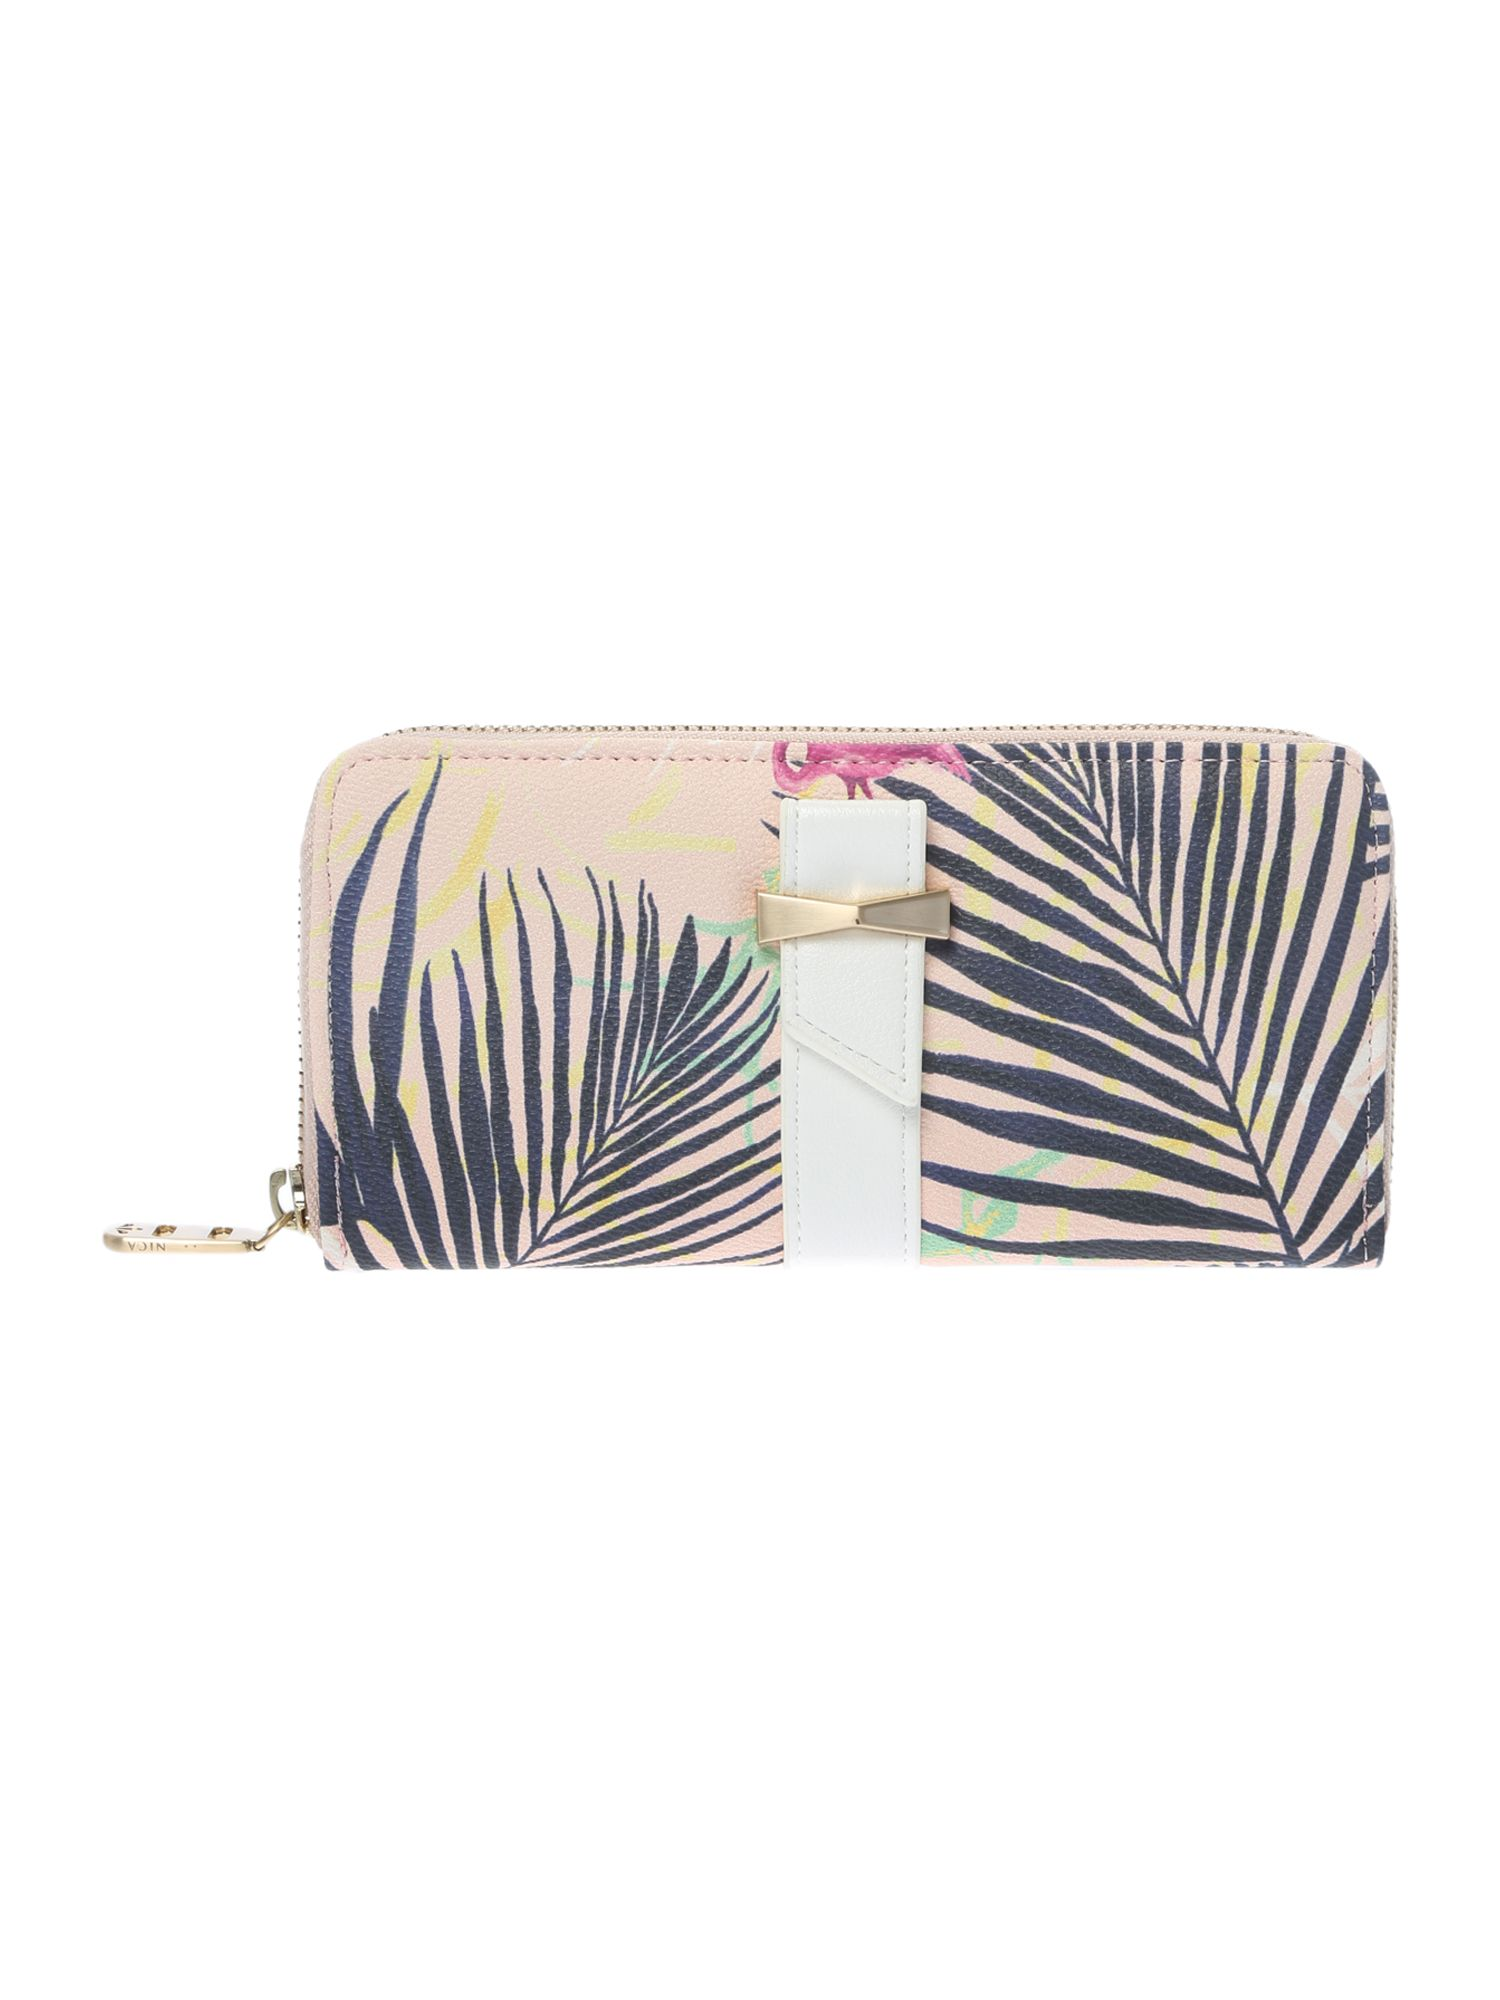 chloe knock off bags - Buy cheap Chloe purse - compare Bags prices for best UK deals